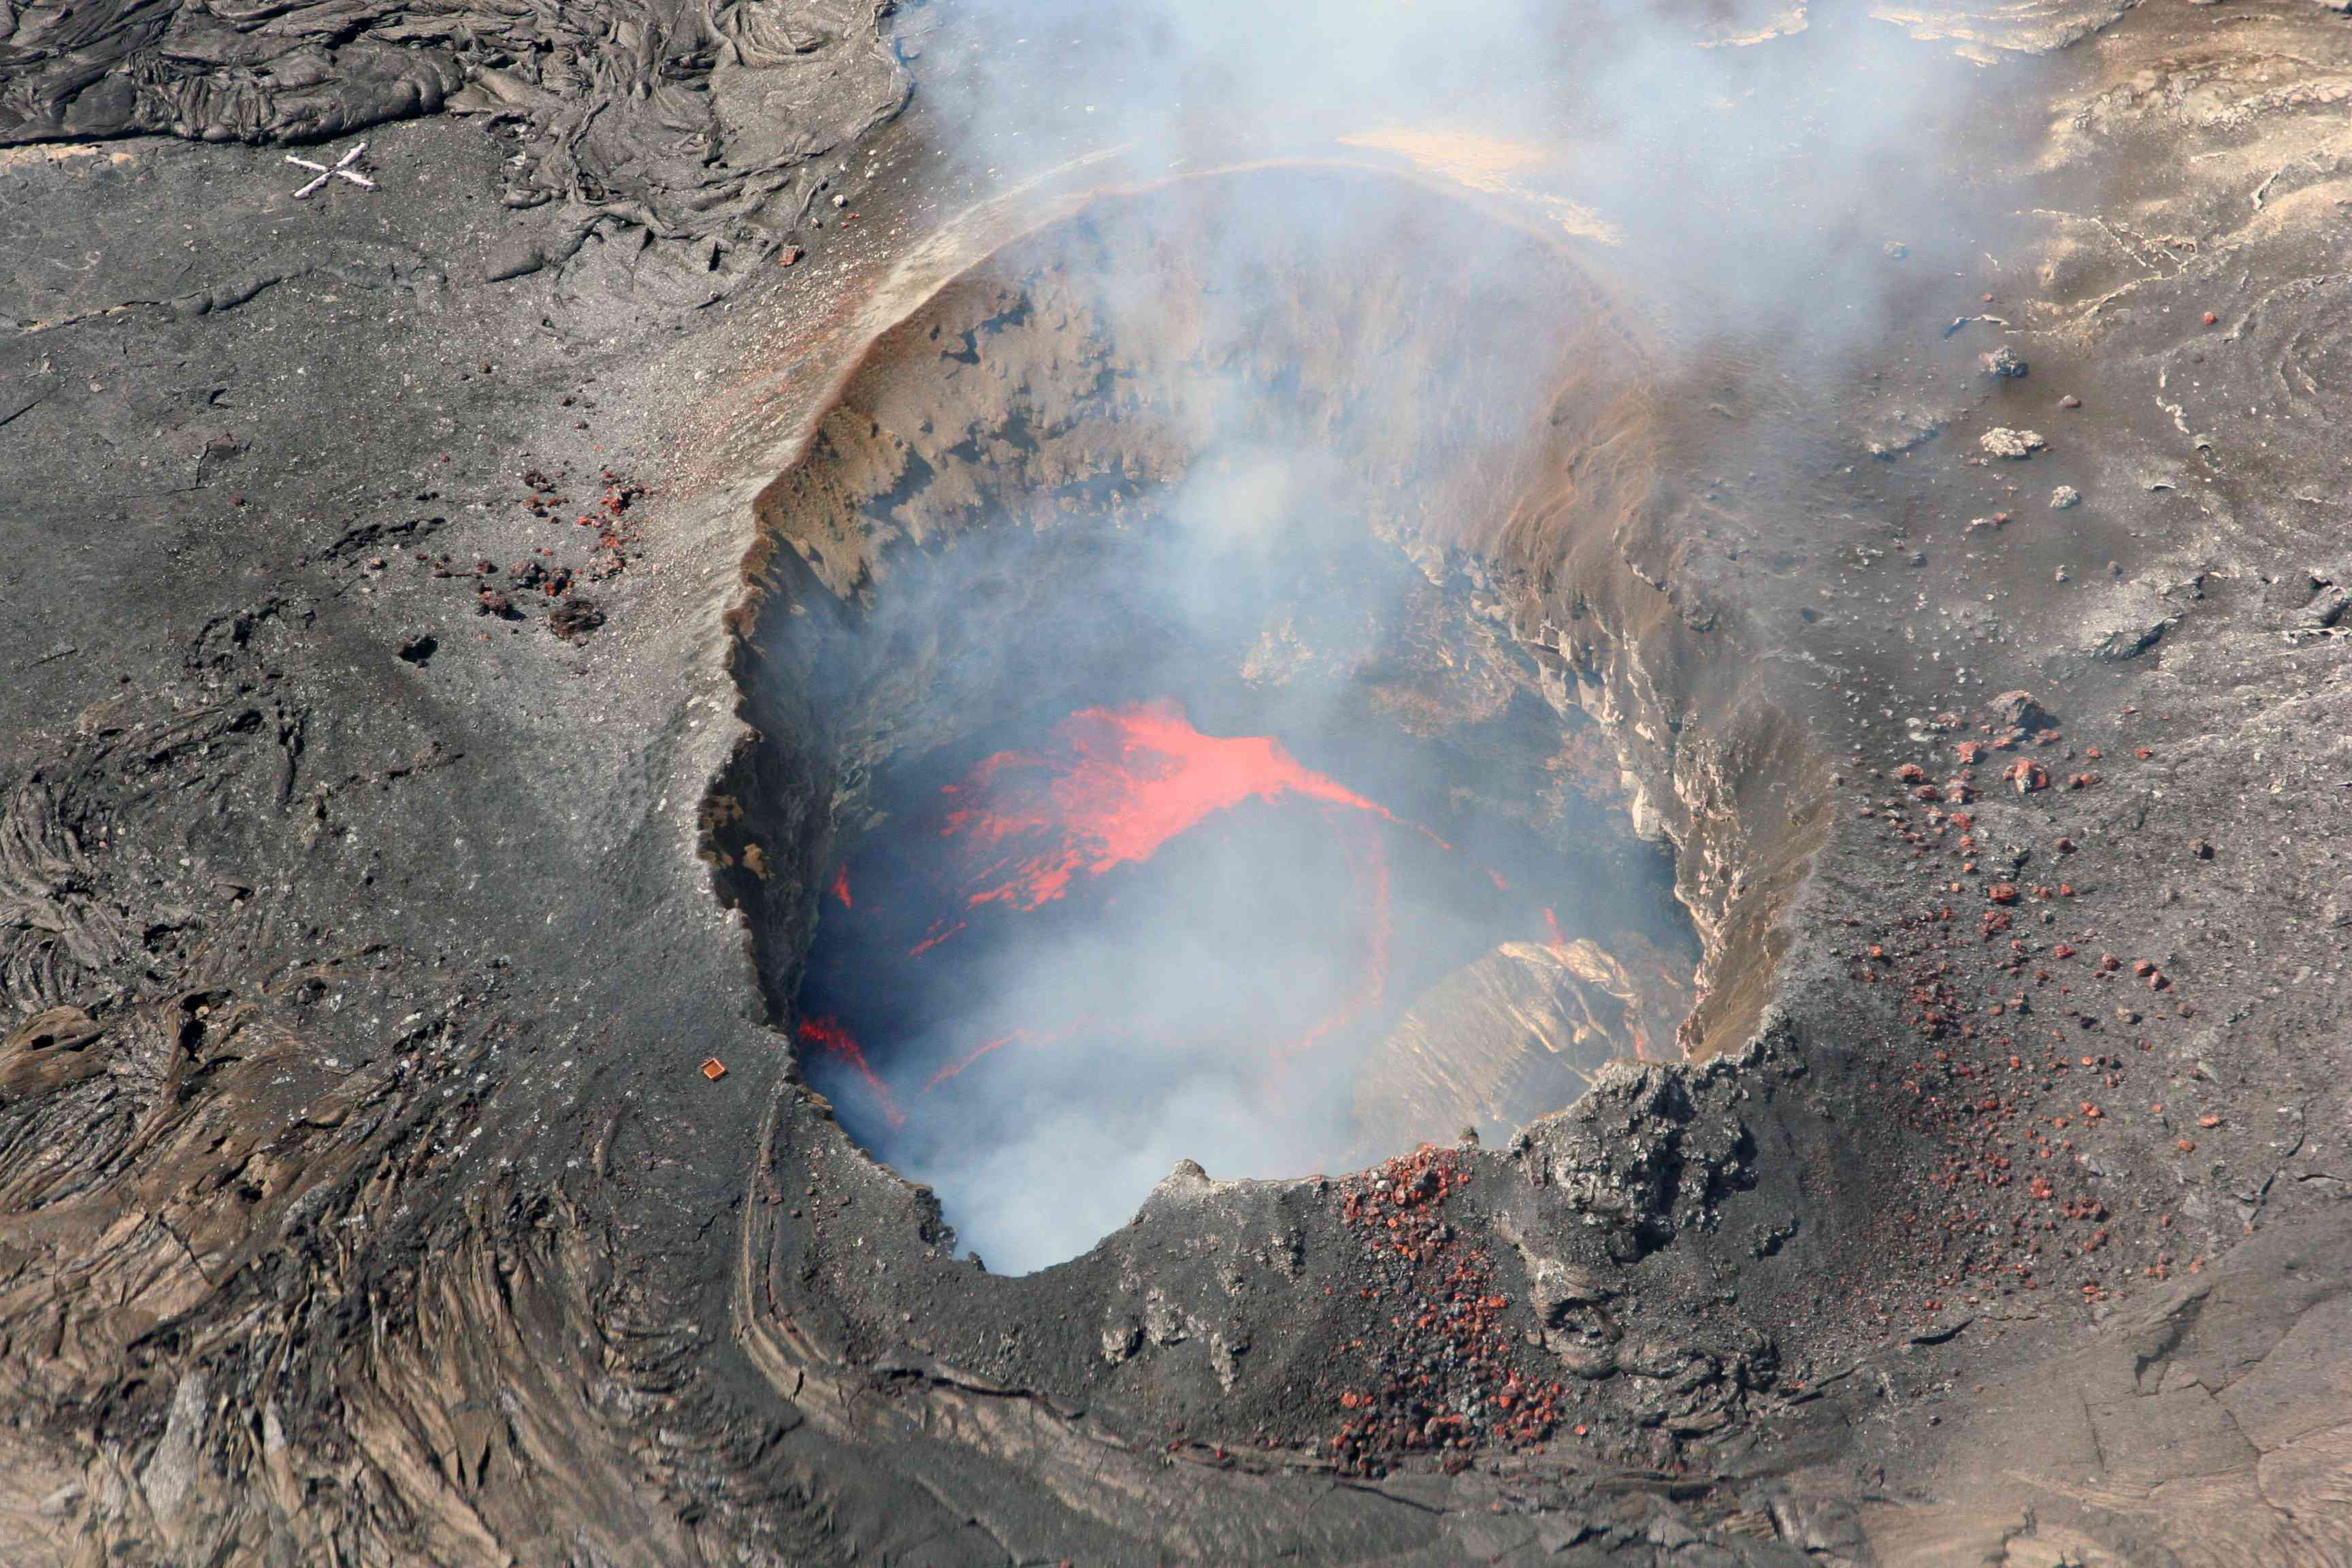 Overhead view of steaming, fiery vent on the Kilauea Volcano